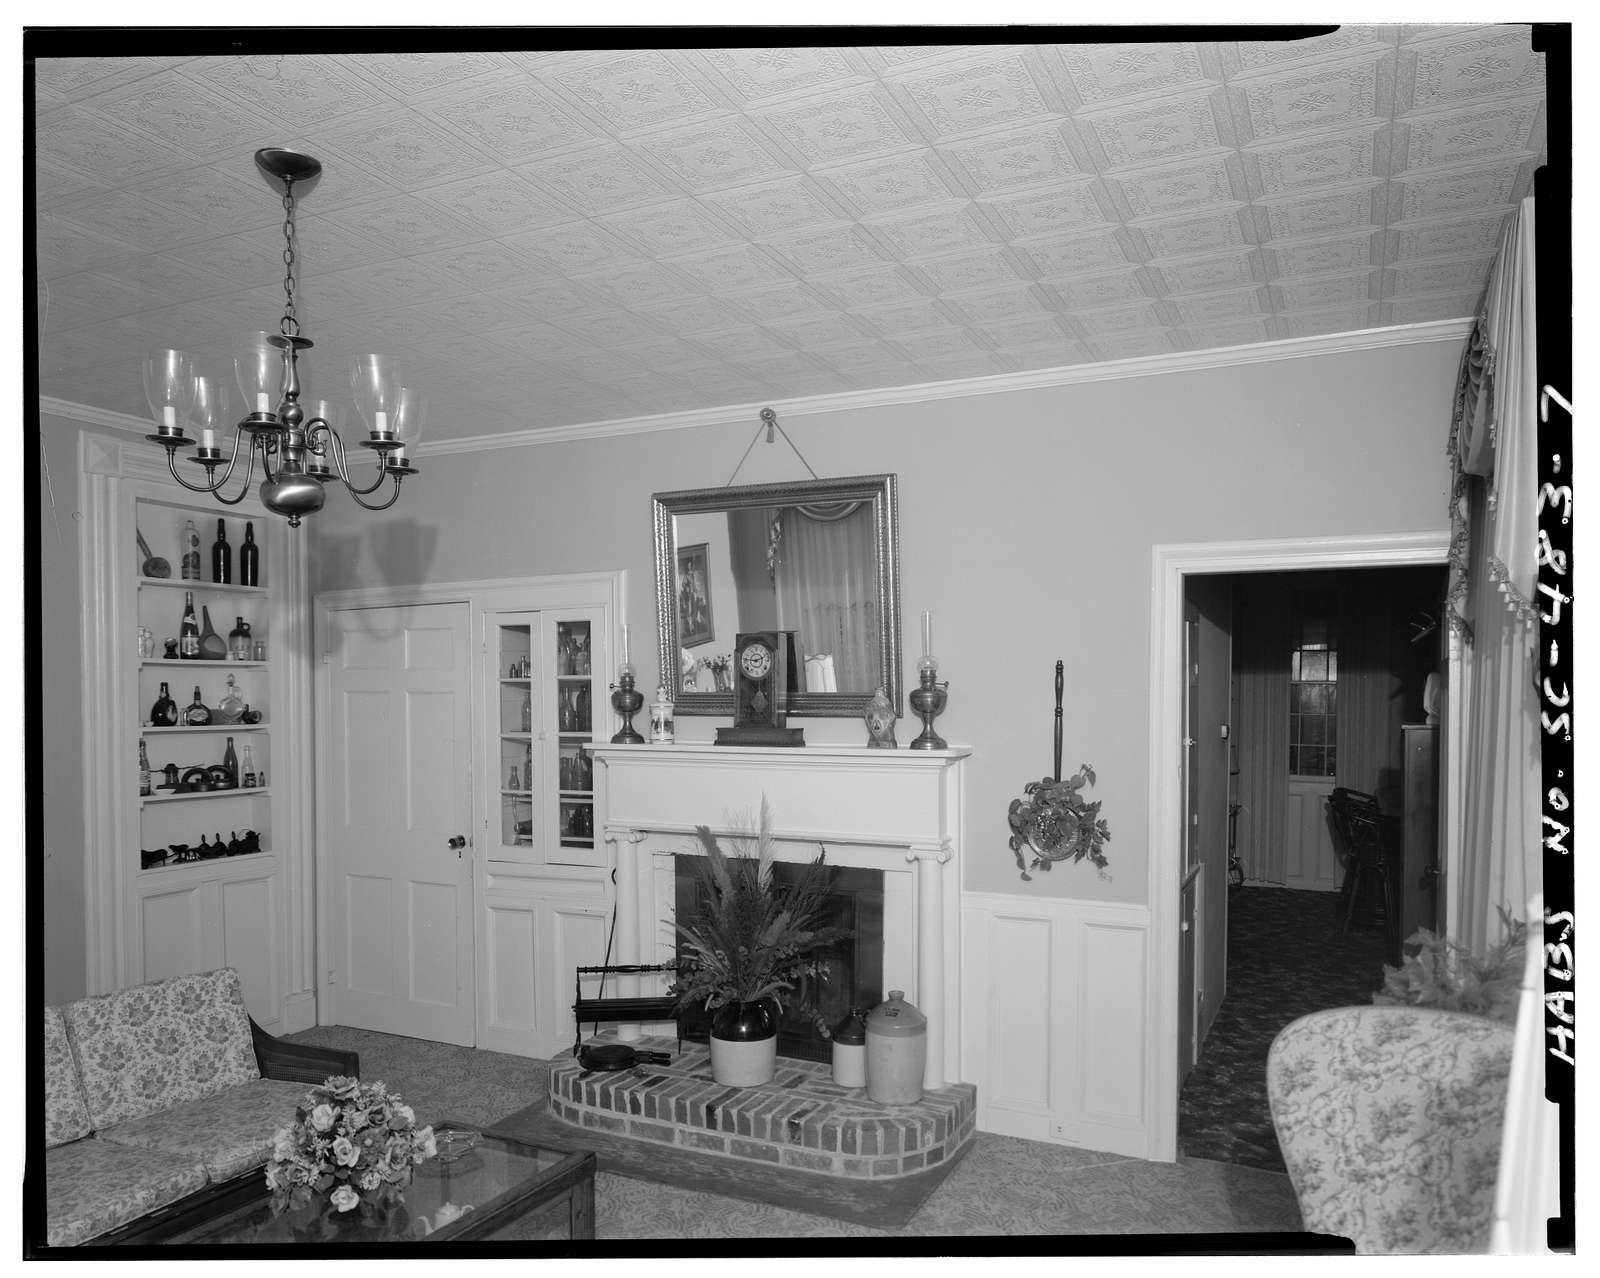 Stephan Williams House, U.S. Route 176, Holly Hill, Orangeburg County, SC